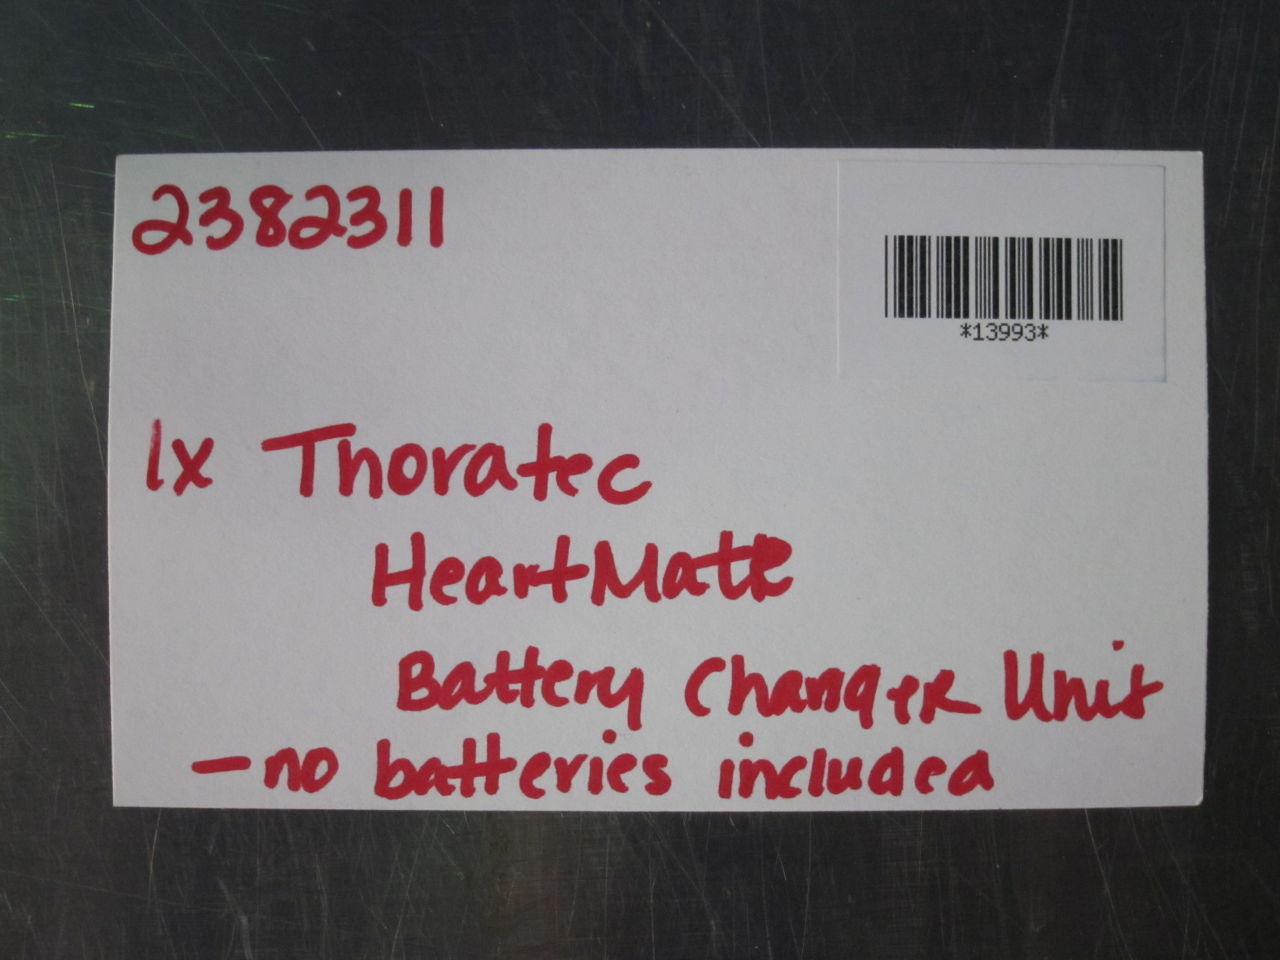 THORATEC HeartMate Battery Charger